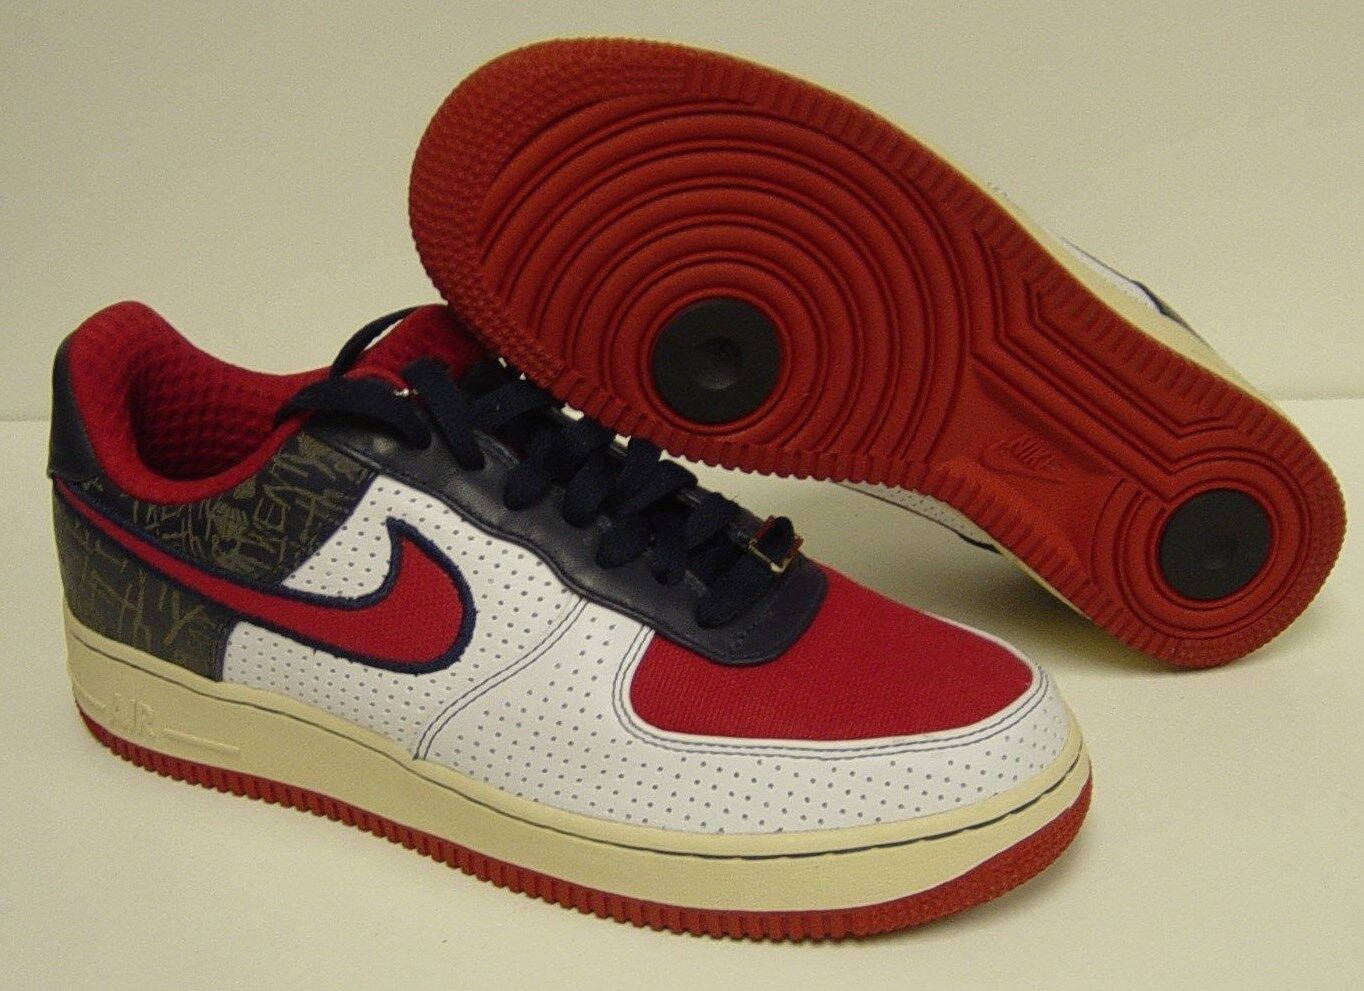 NEW Mens NIKE Air Force 1 Premium '07 315180 161 Red White bluee Sneakers shoes